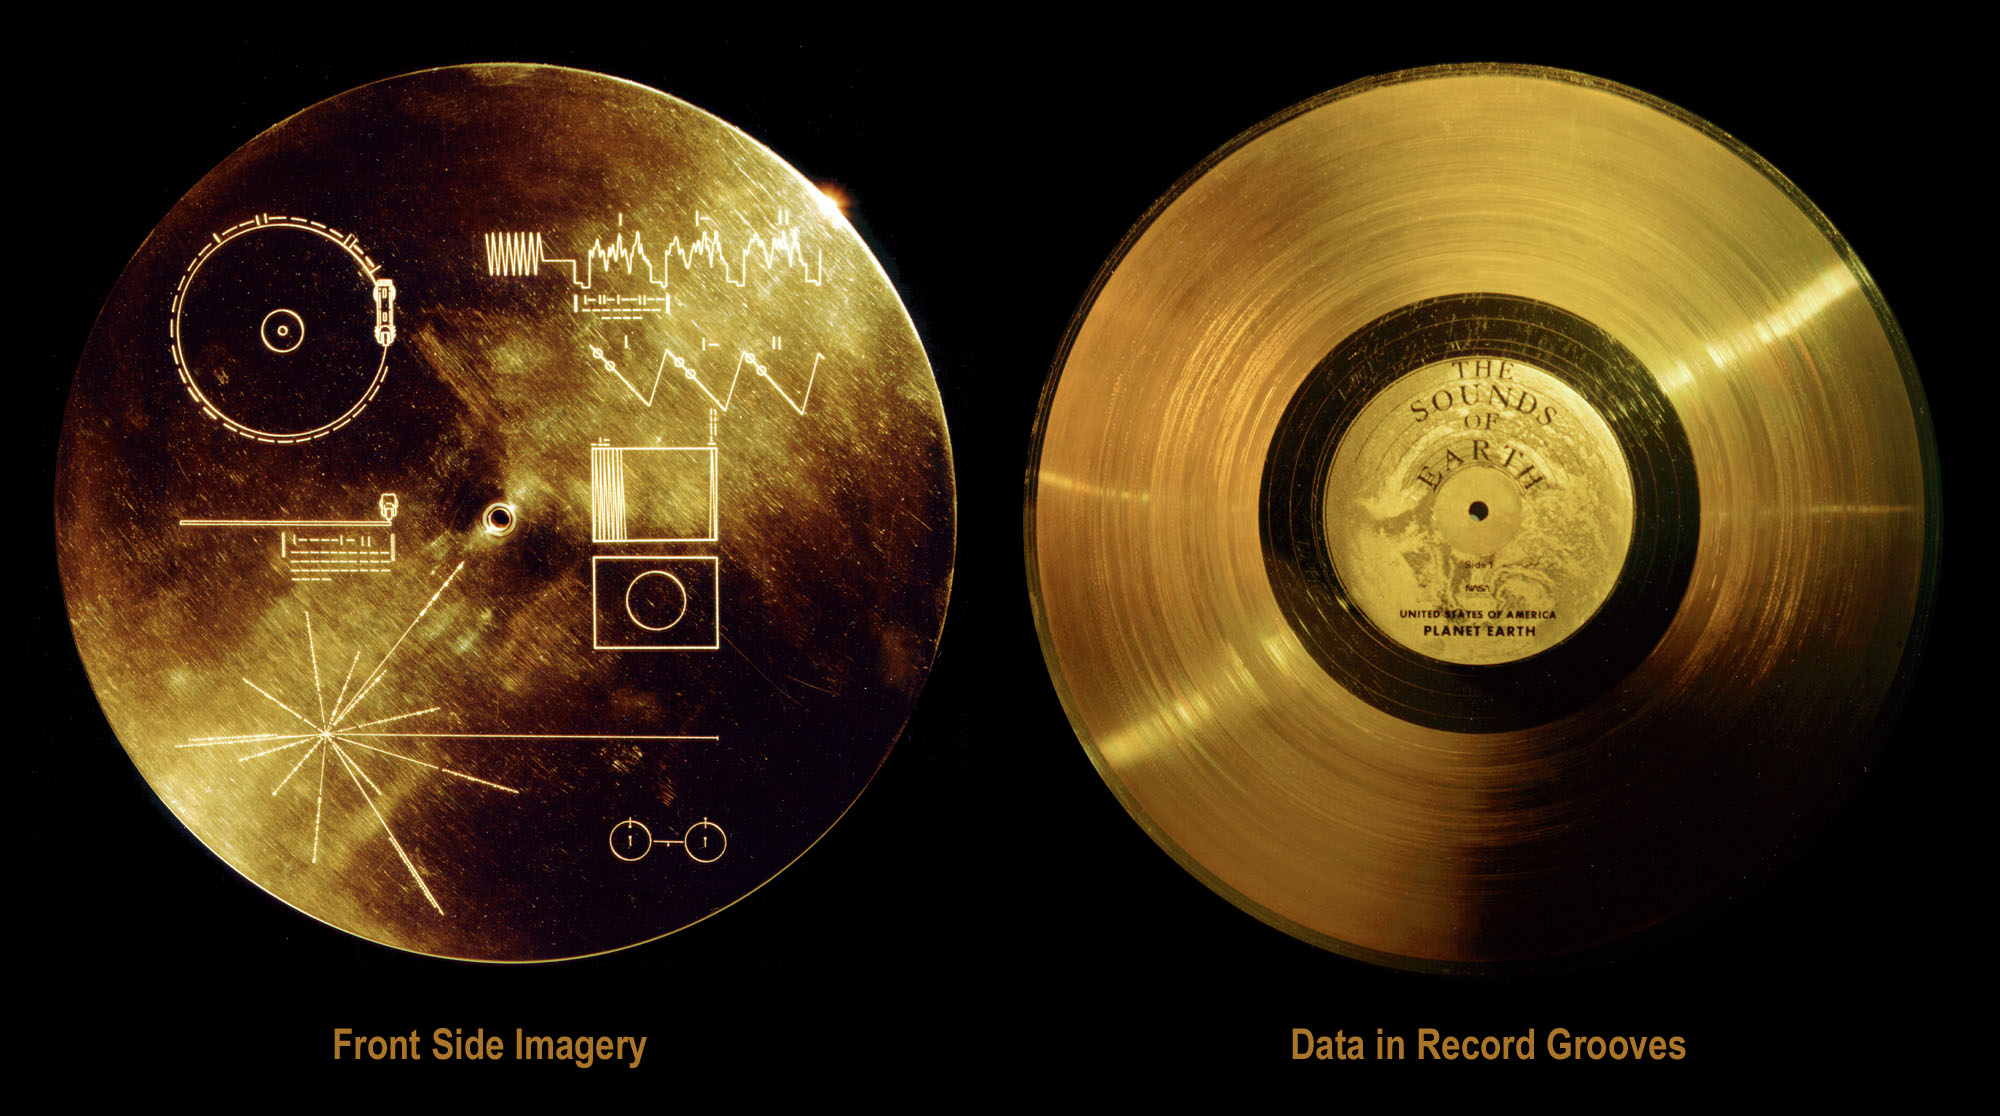 The-Voyagers-Golden-Record-1977